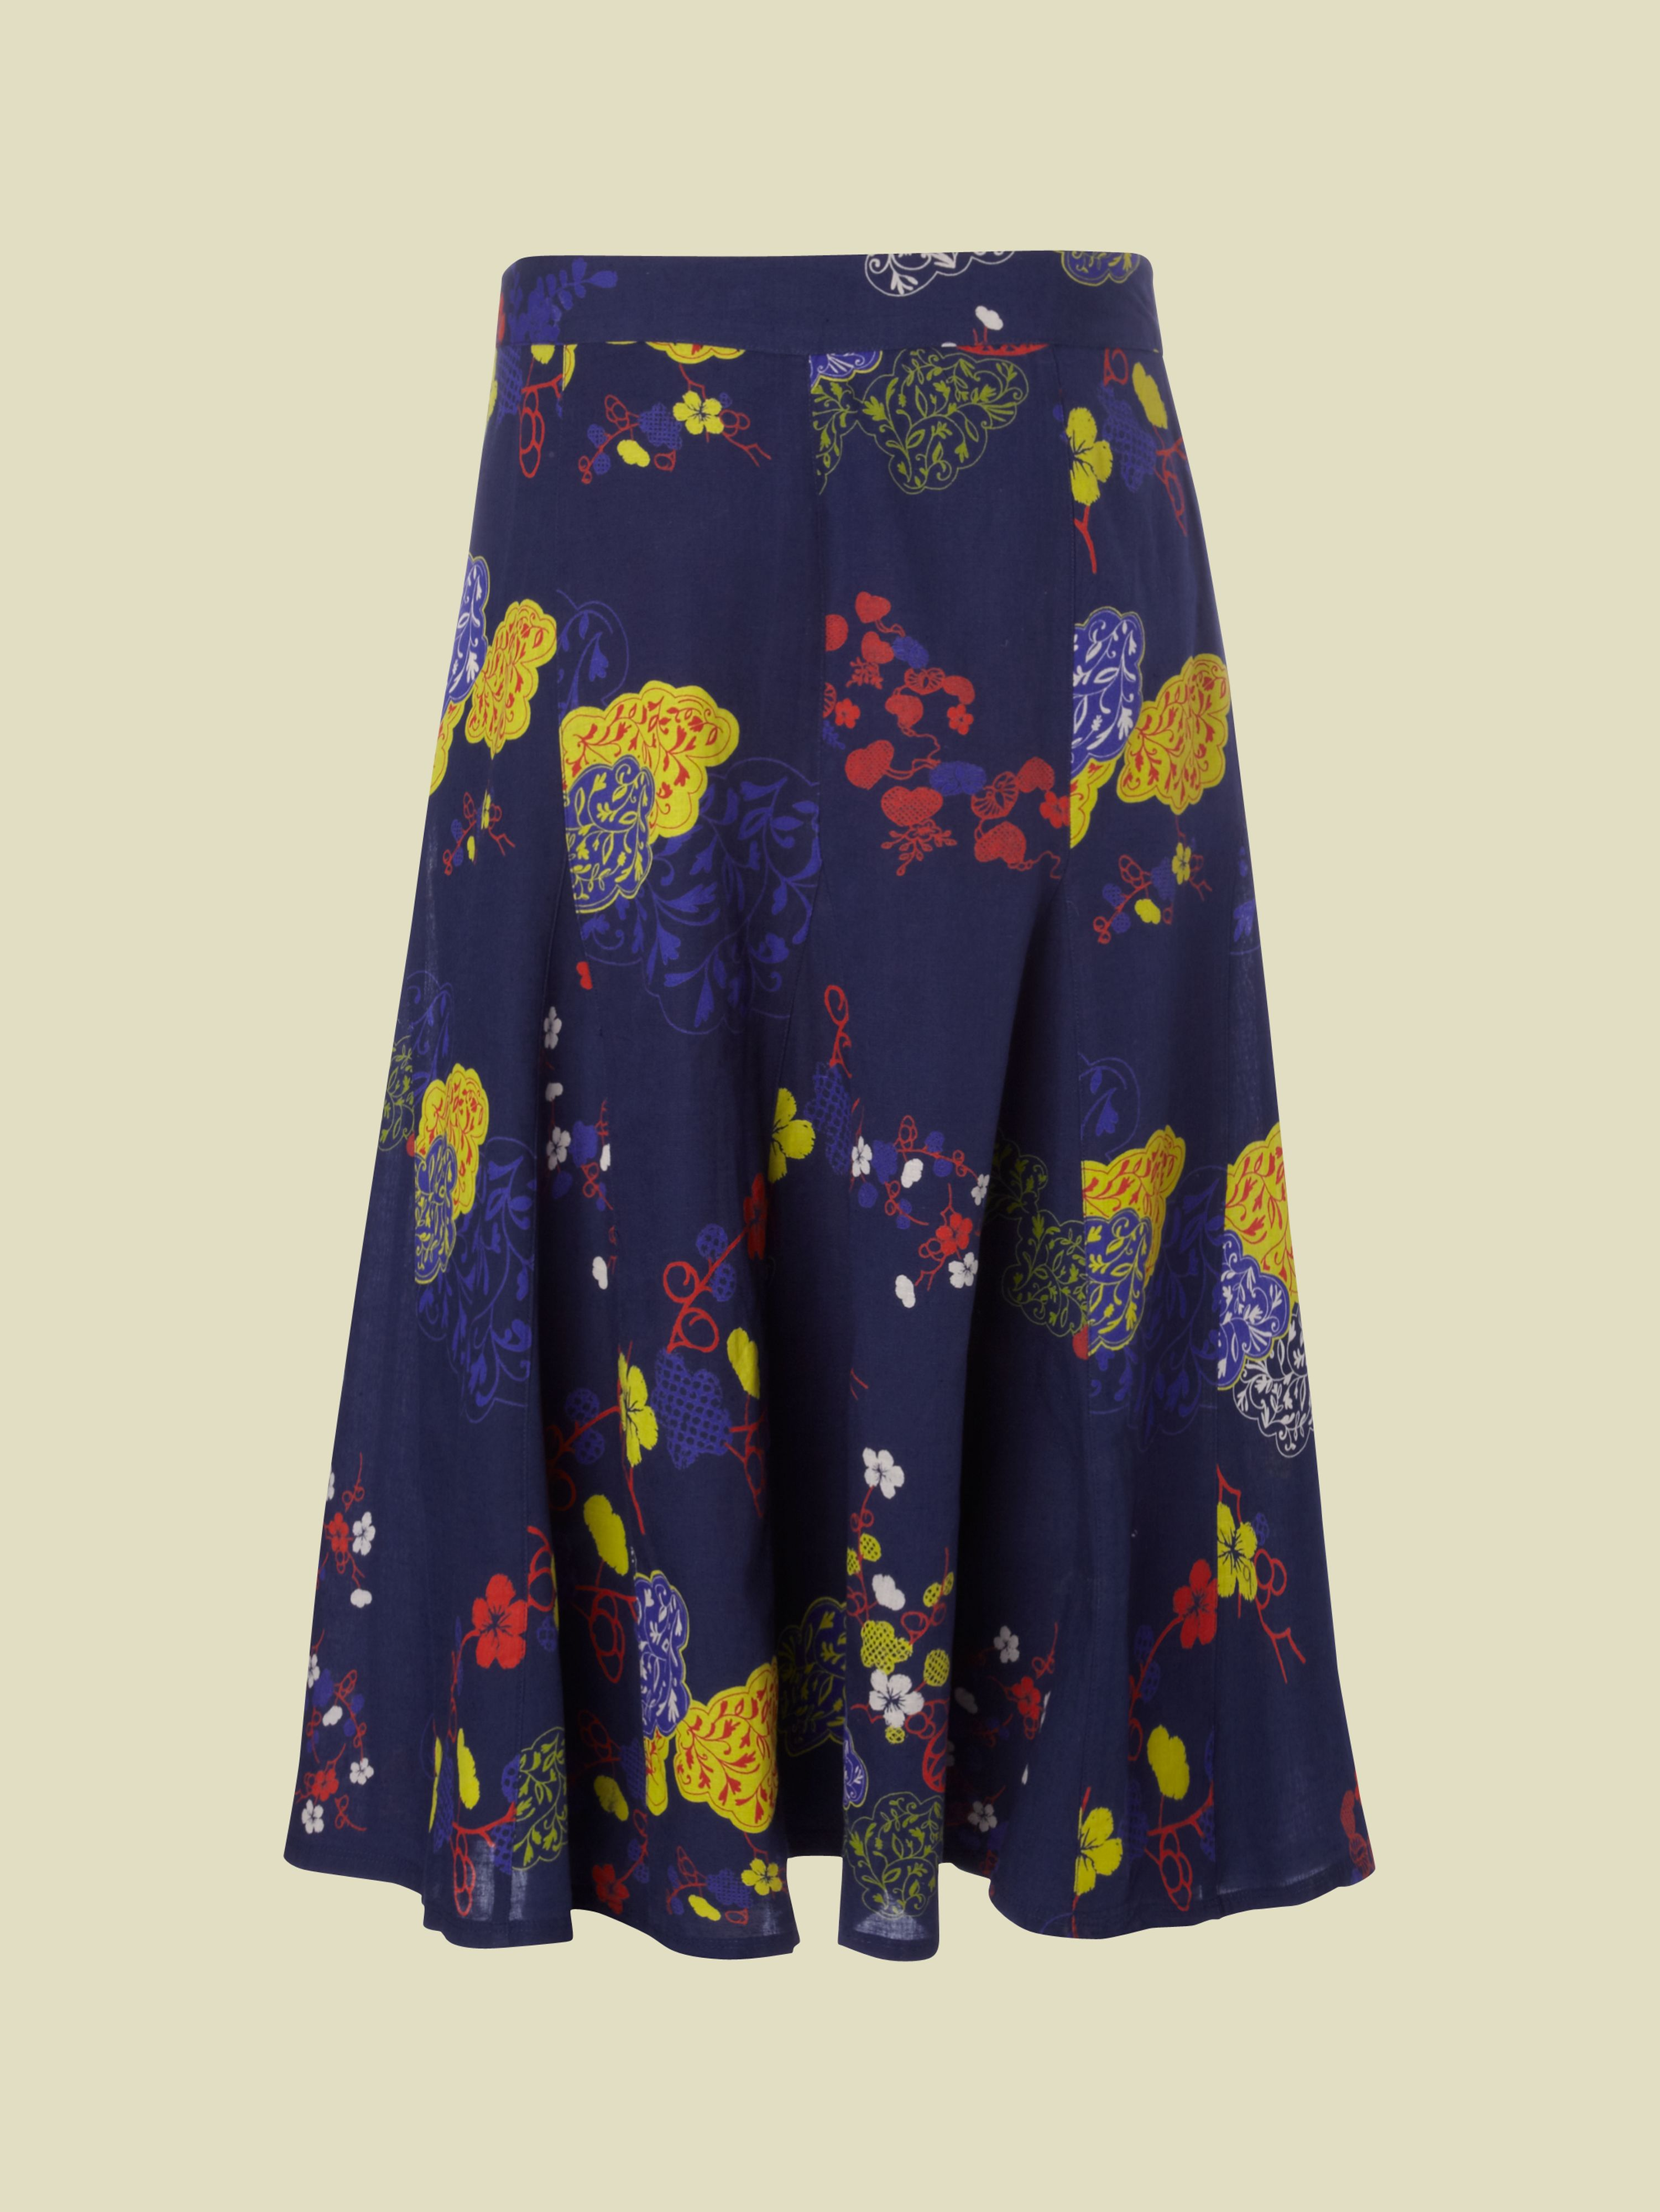 Mountain flower skirt